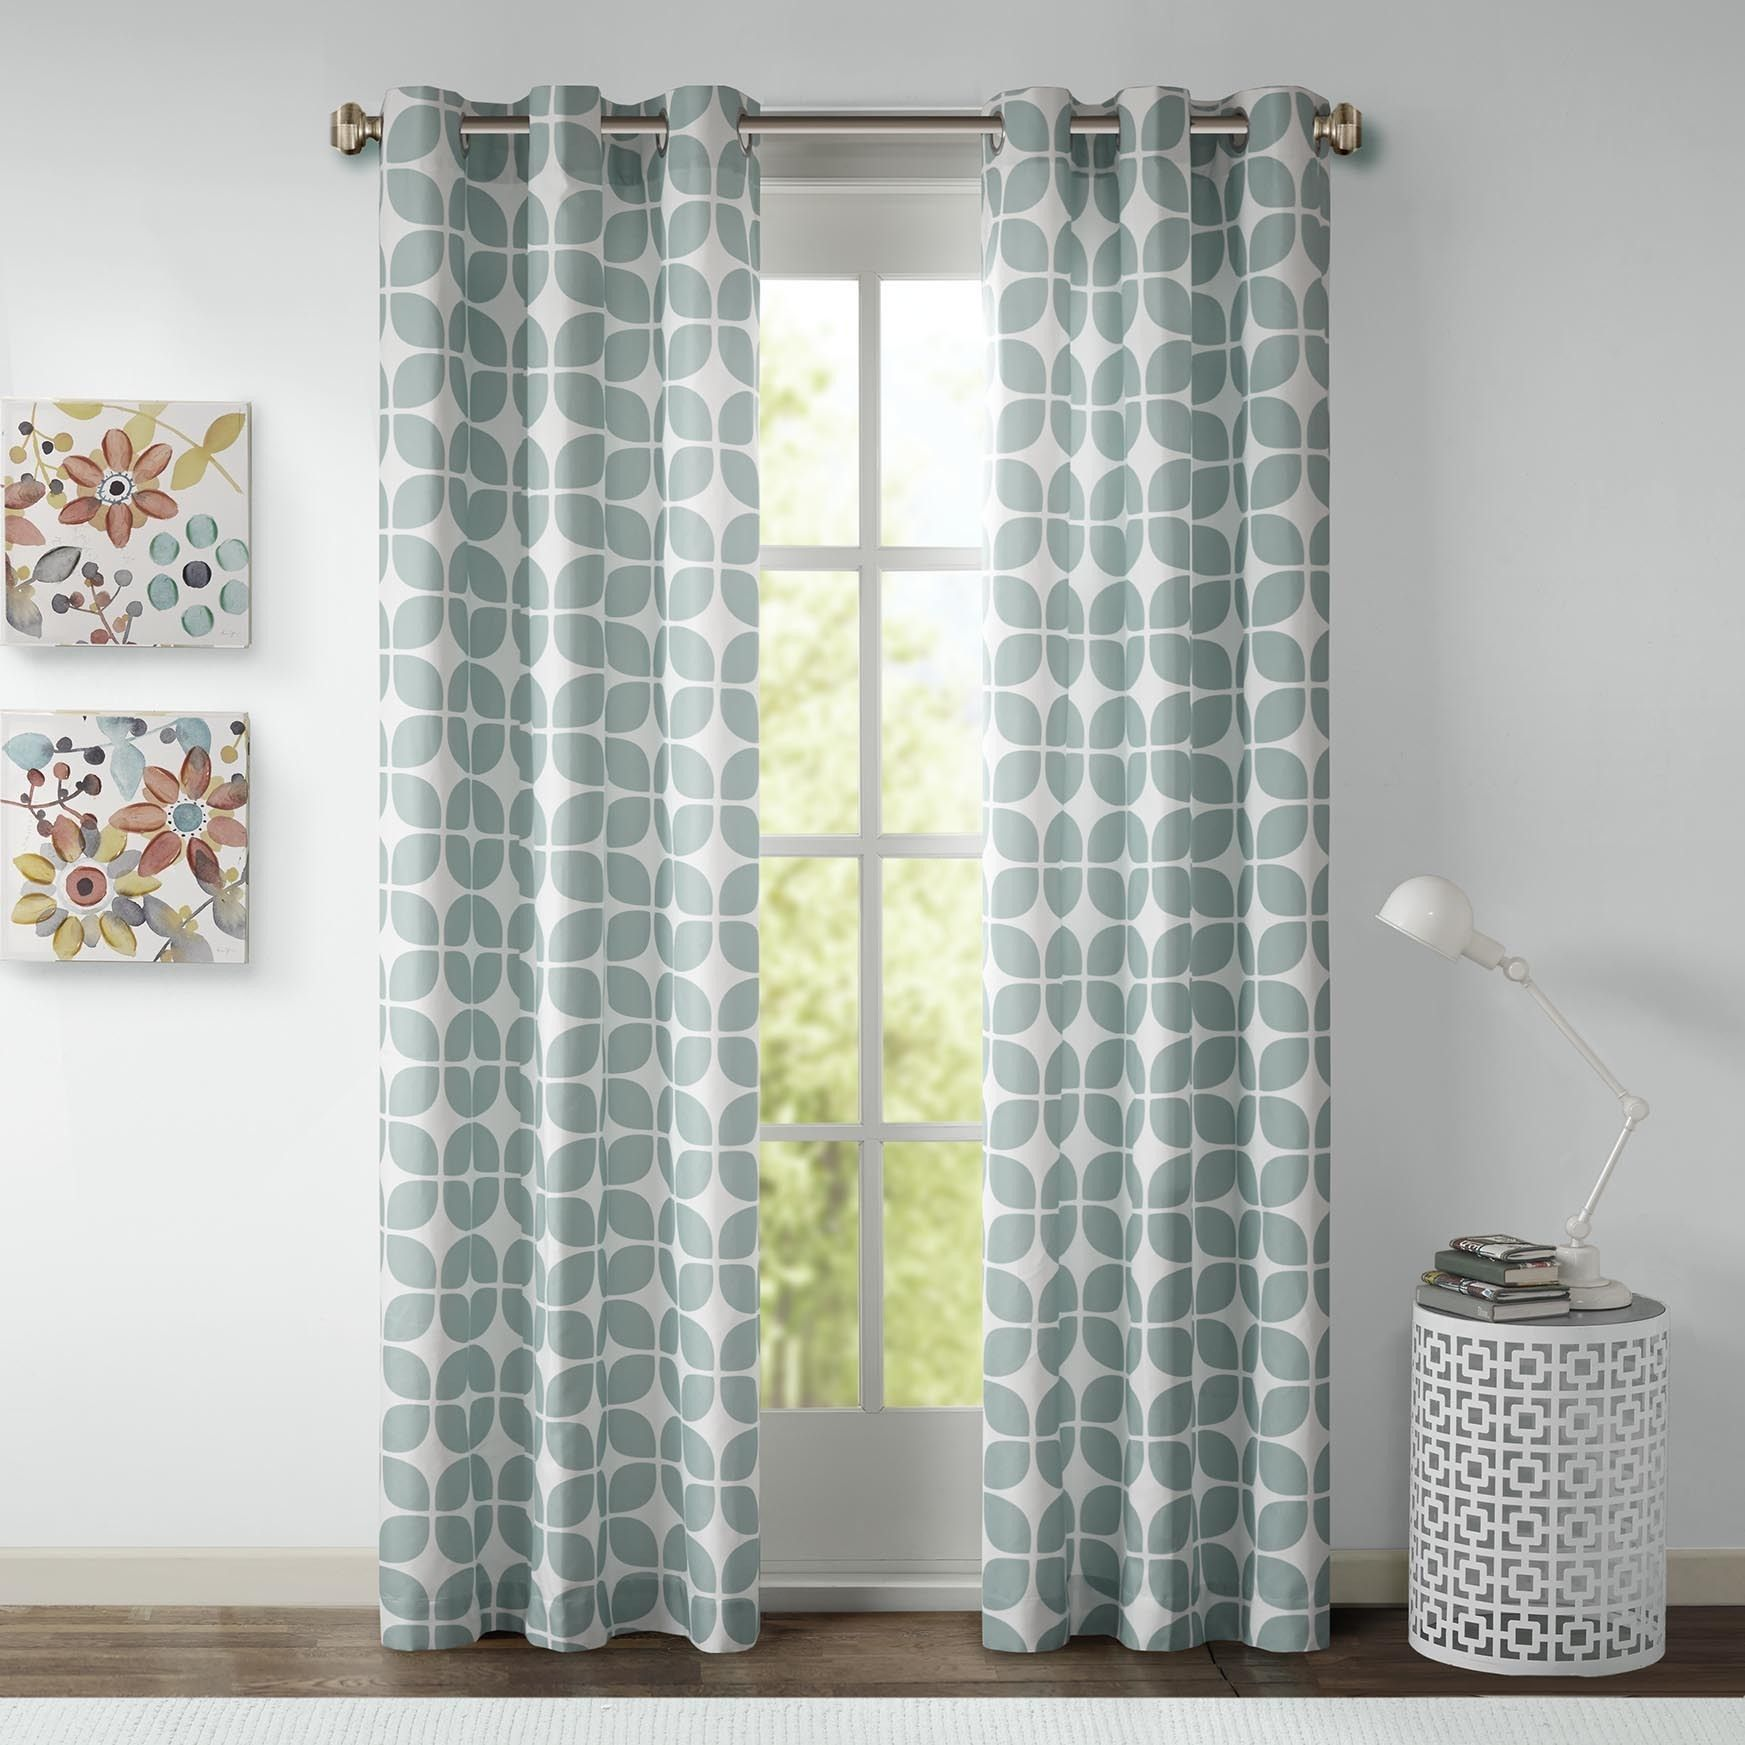 fun blinds blind shared turn into curtains blackout set city cityscapes hole windows feature a ukrainian and buildings holeroll this that called cut concept iconic company your stars of